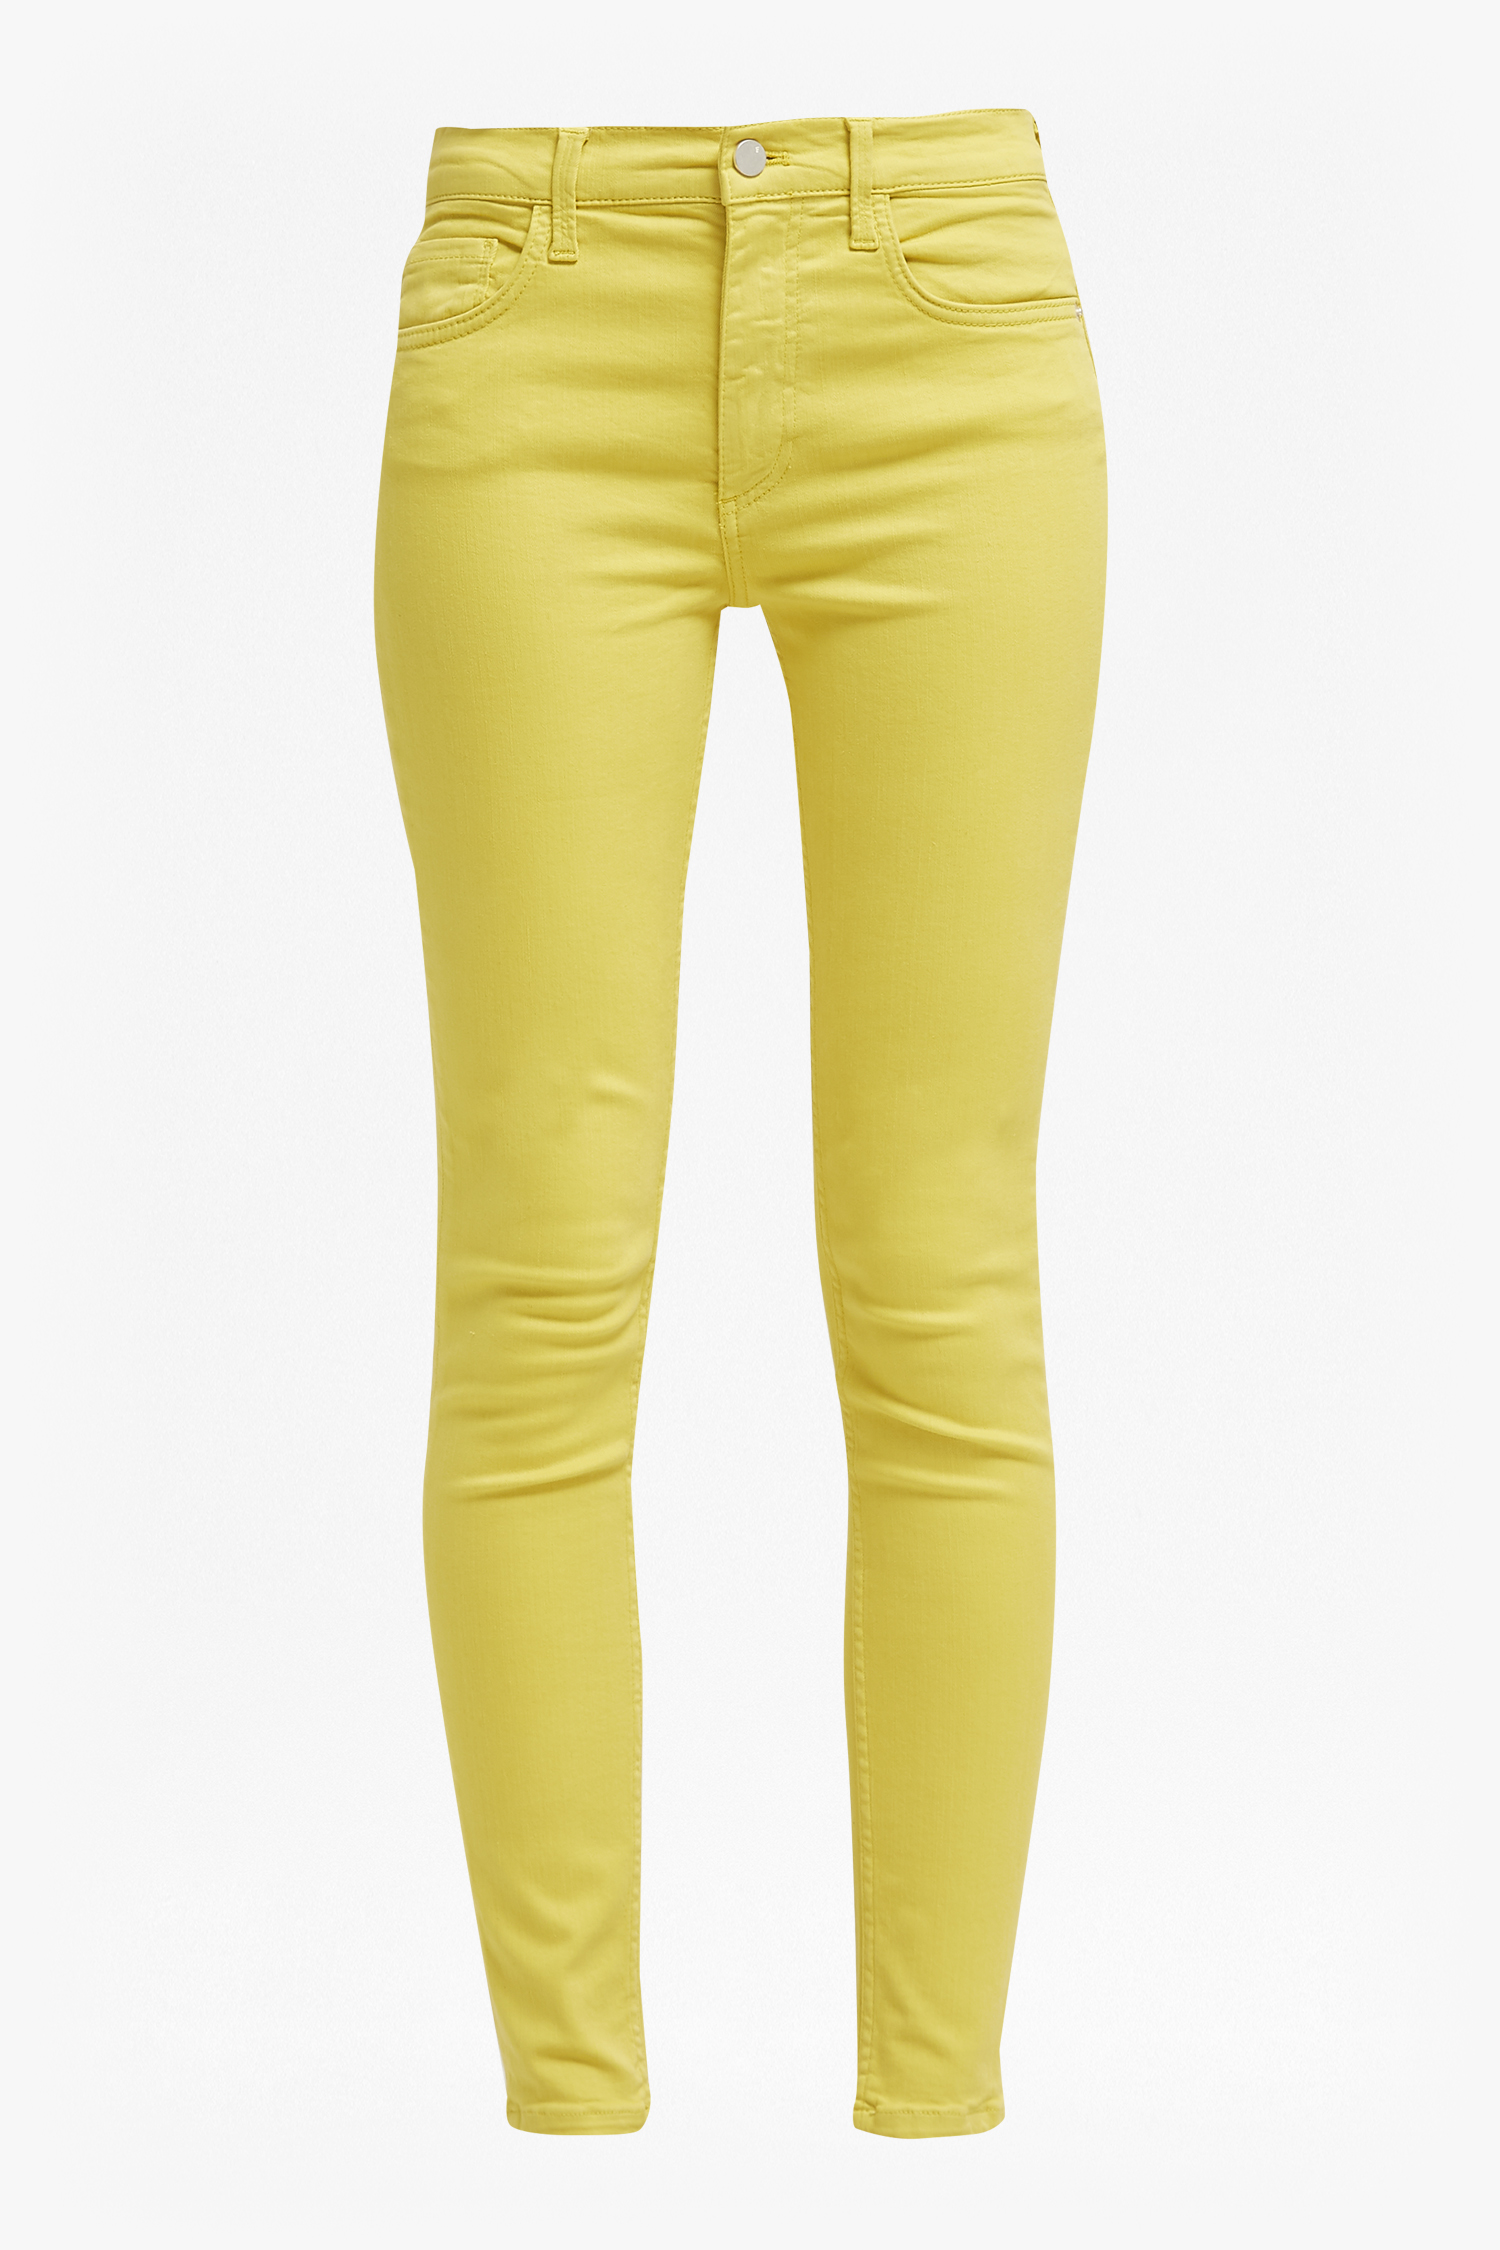 Where can you buy coloured skinny jeans?